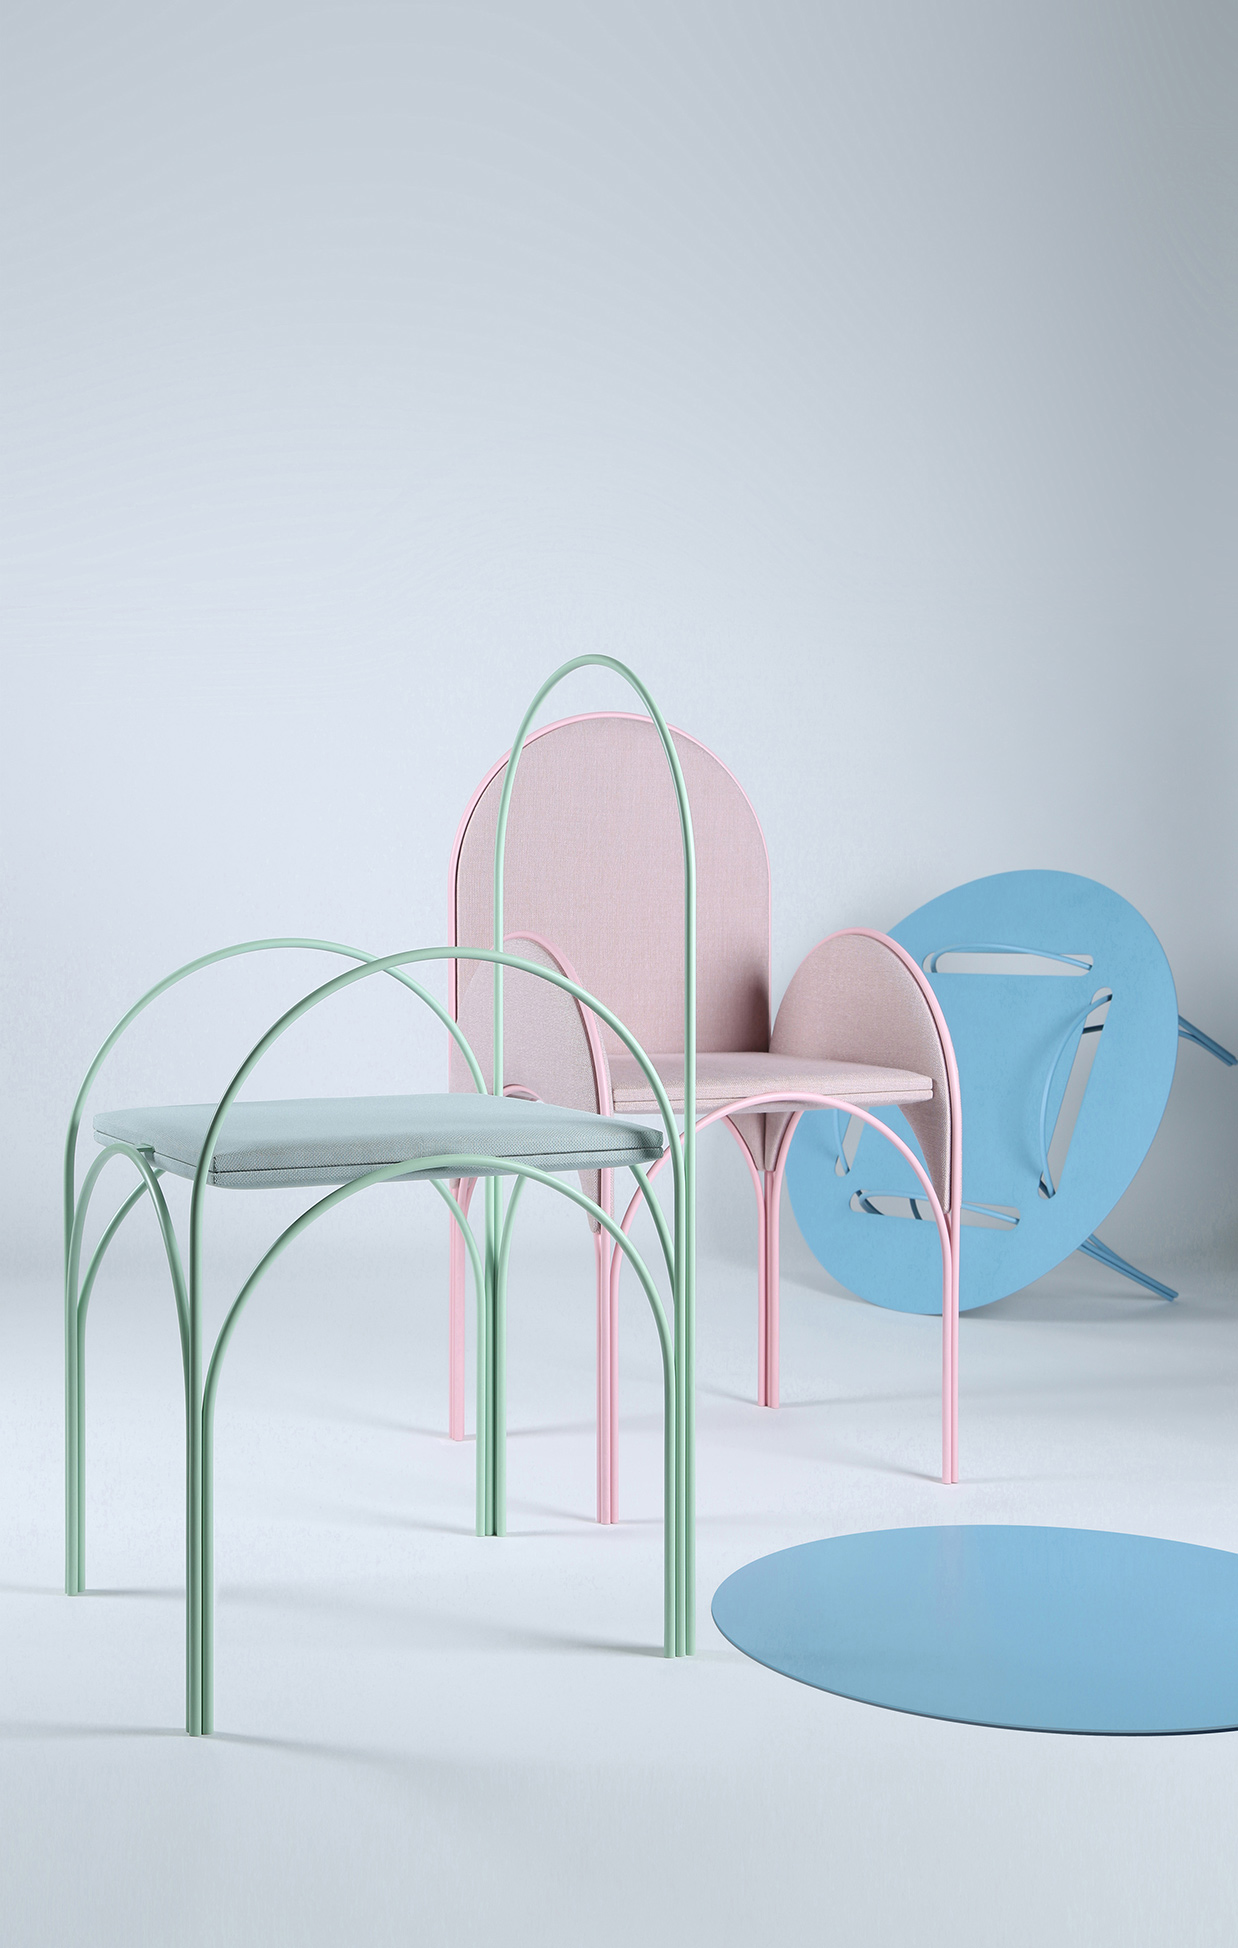 Richard Jasmine's Hawa Beirut chairs